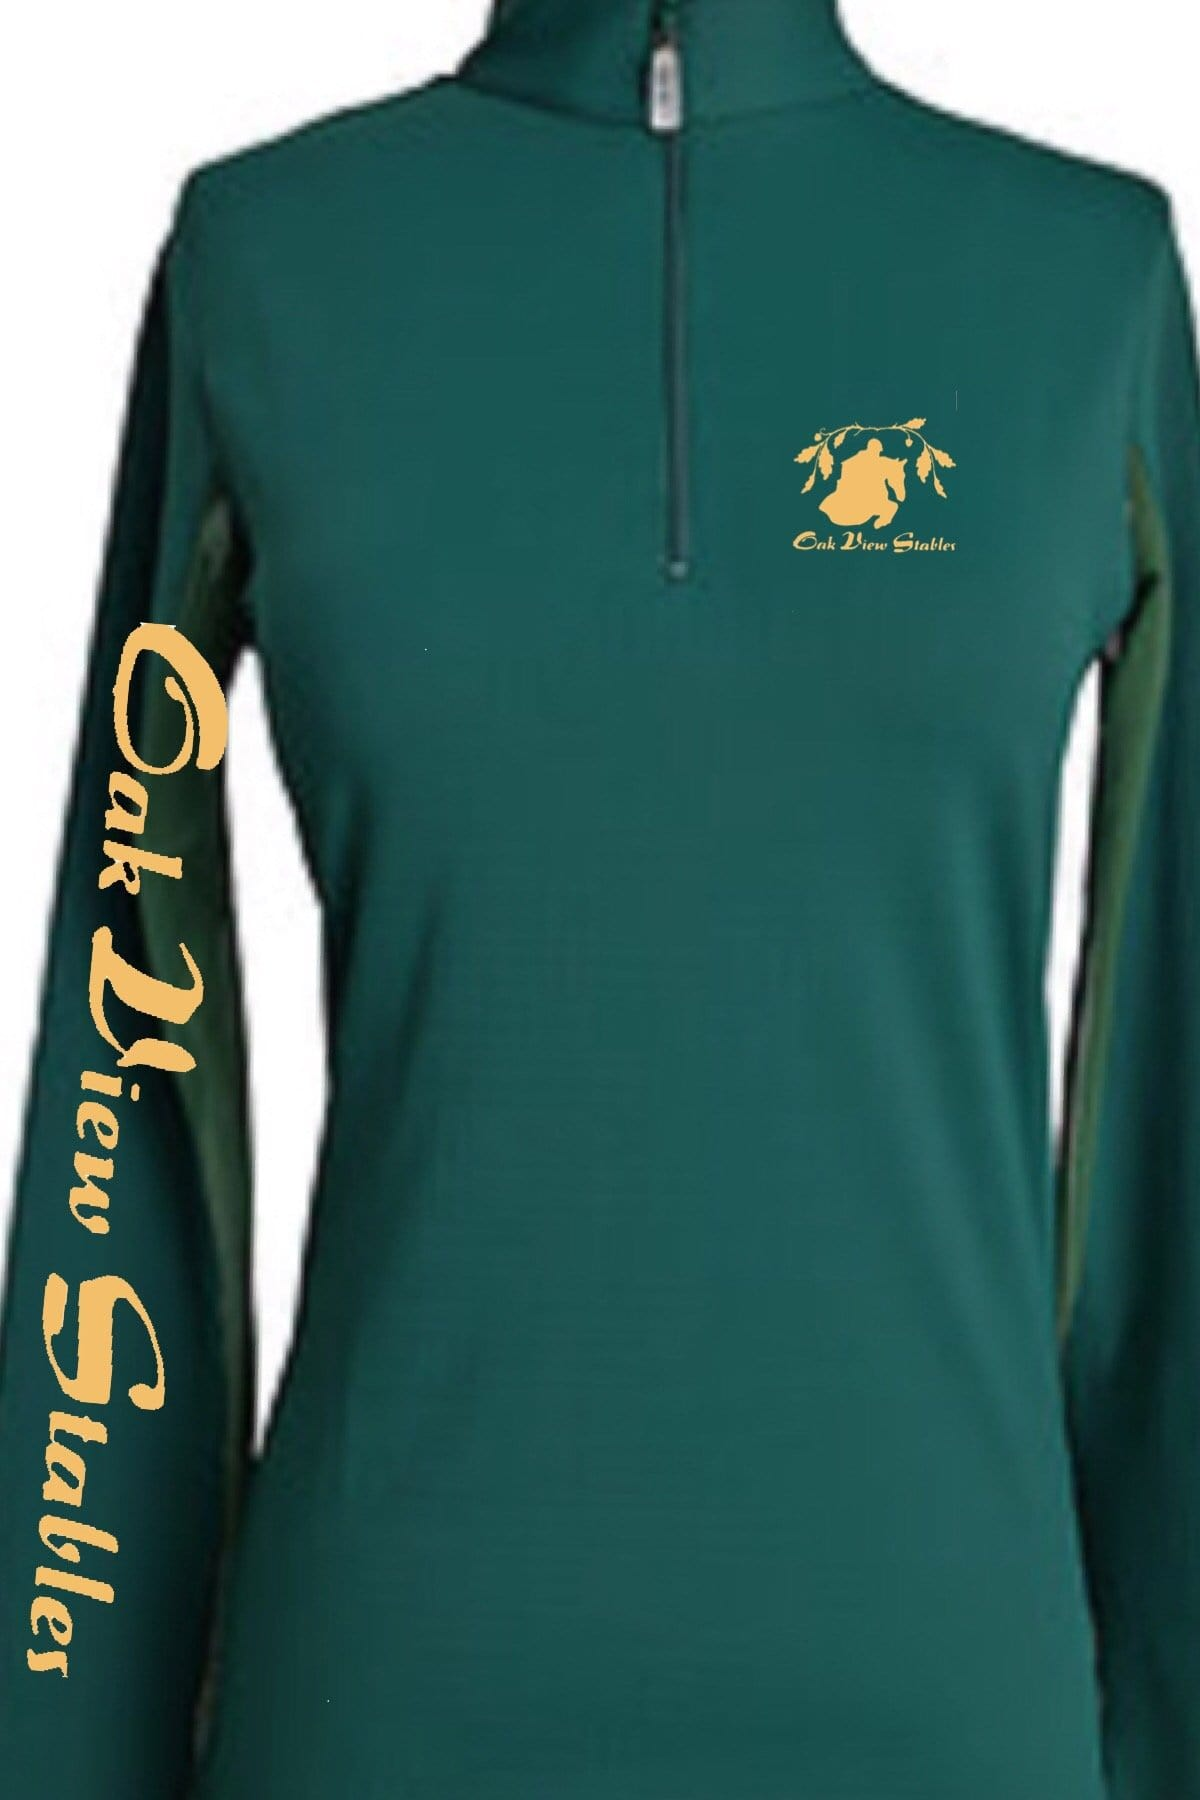 Equestrian Team Apparel Custom Team Shirts Youth / White Oak View Stables equestrian team apparel online tack store mobile tack store custom farm apparel custom show stable clothing equestrian lifestyle horse show clothing riding clothes horses equestrian tack store